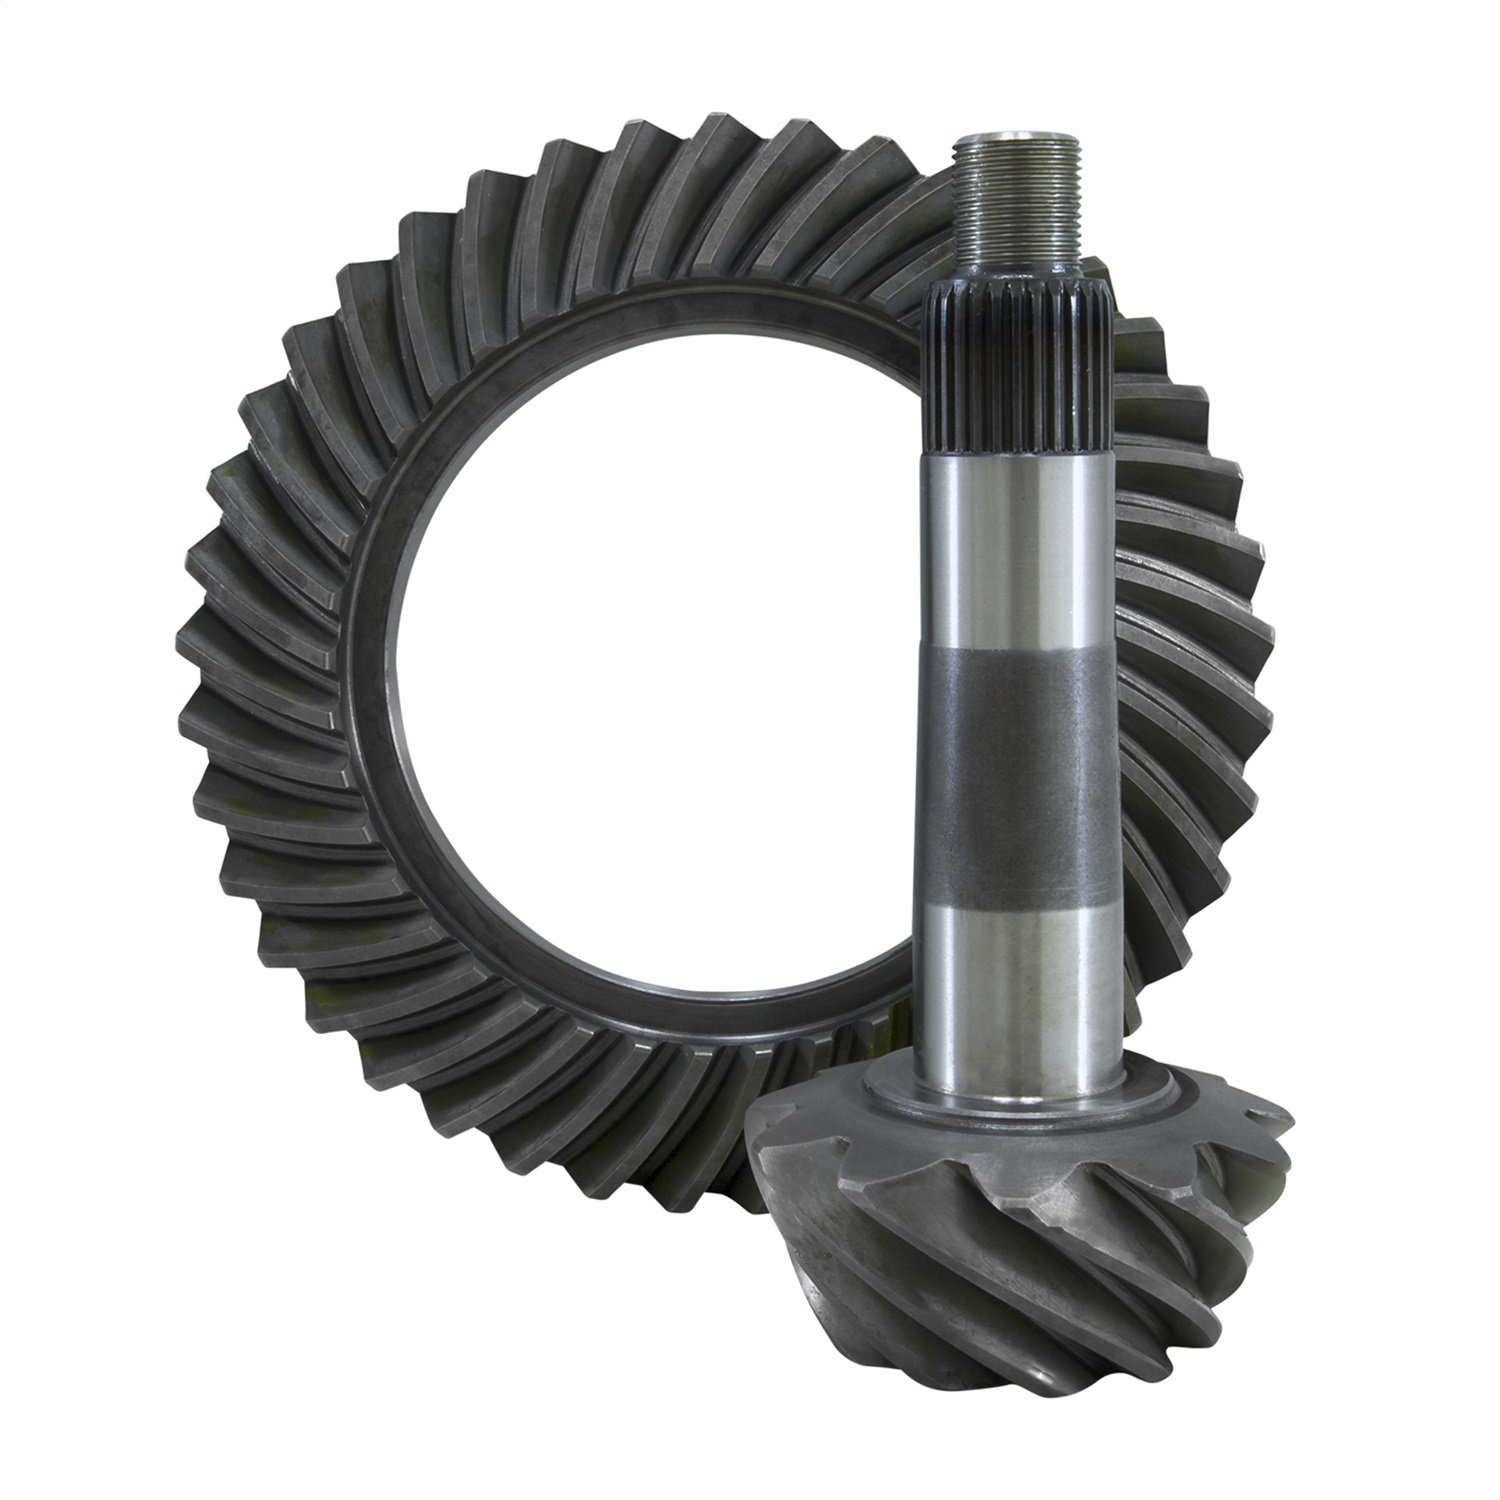 USA Standard Gear (ZG GM12T-342) Ring and Pinion Gear Set for GM 12-Bolt Truck Differential